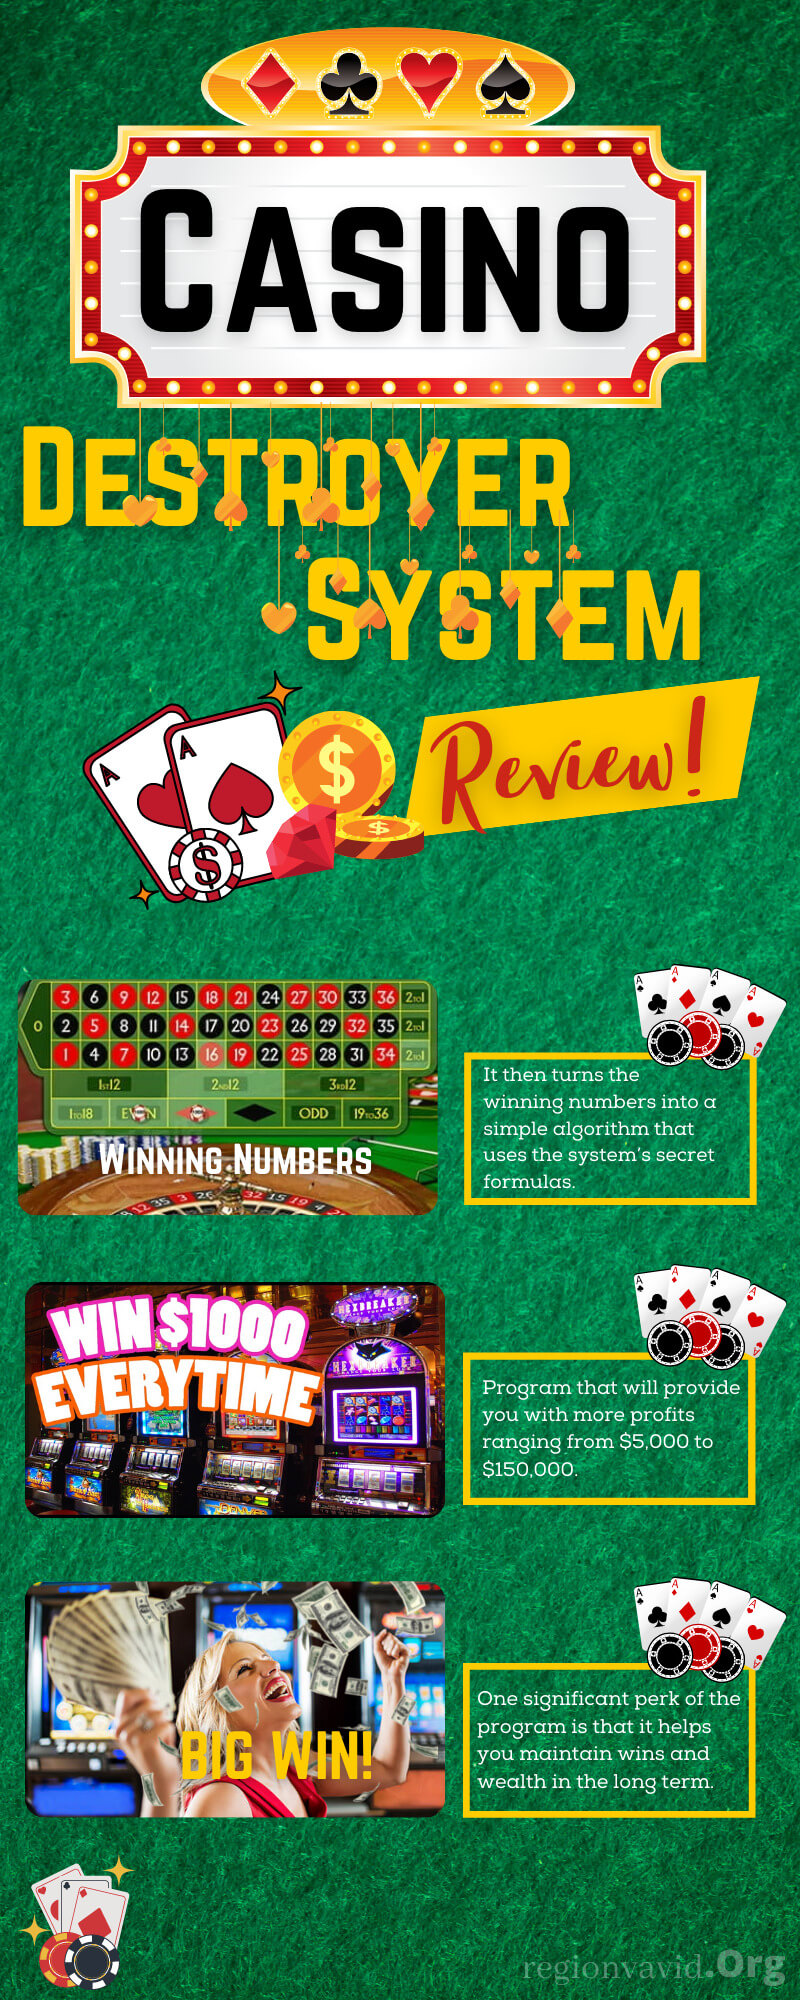 Casino Destroyer System How to win